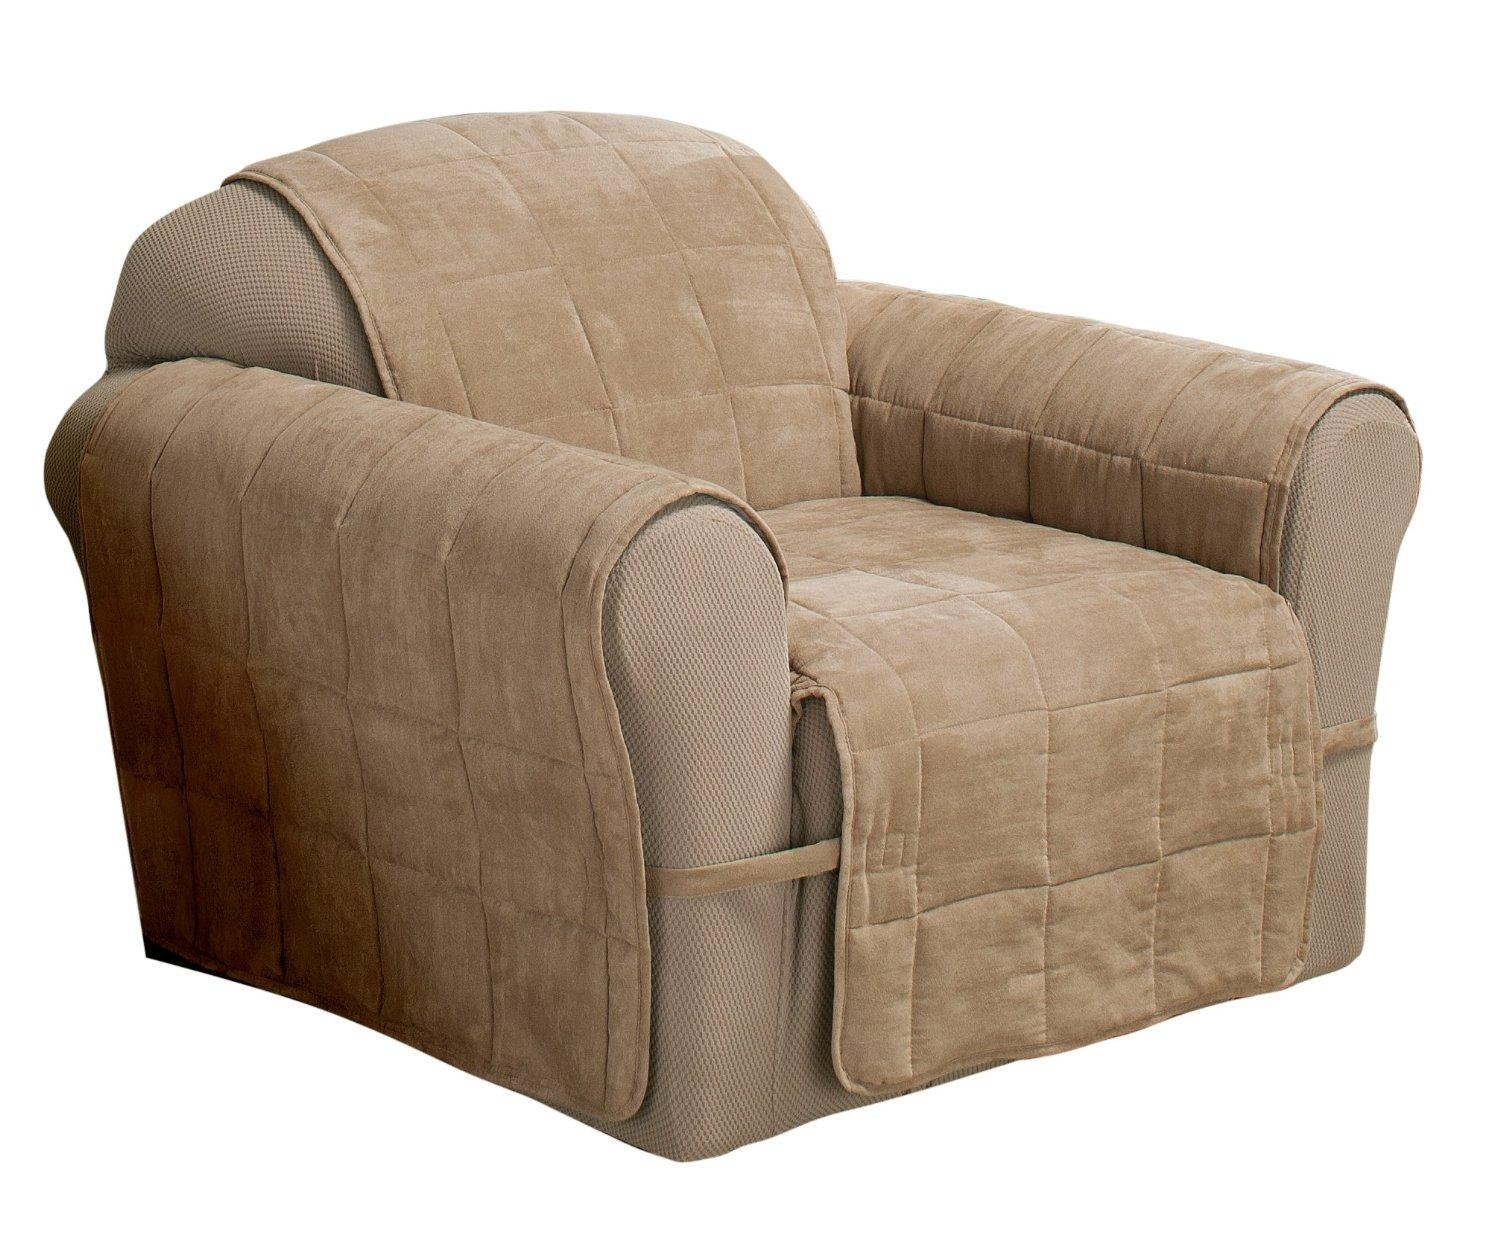 Sofas Center : J172 001 2 Faux Suede Pet Furniture Covers For For Dog Sofas And Chairs (View 16 of 20)